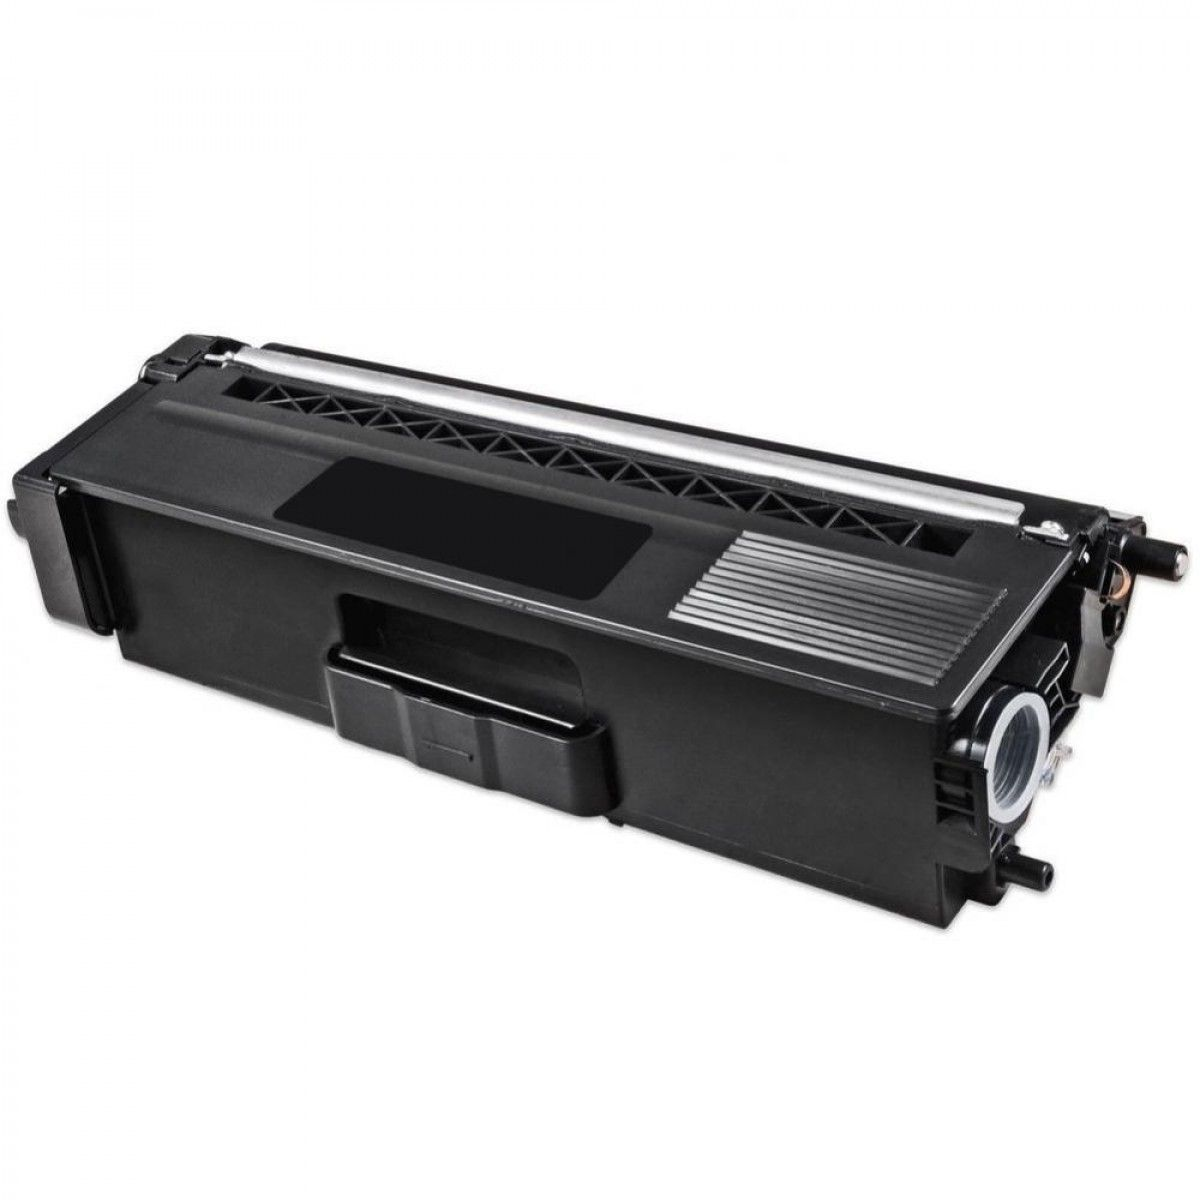 Toner Green Compativel Novo TN-315BK Preto